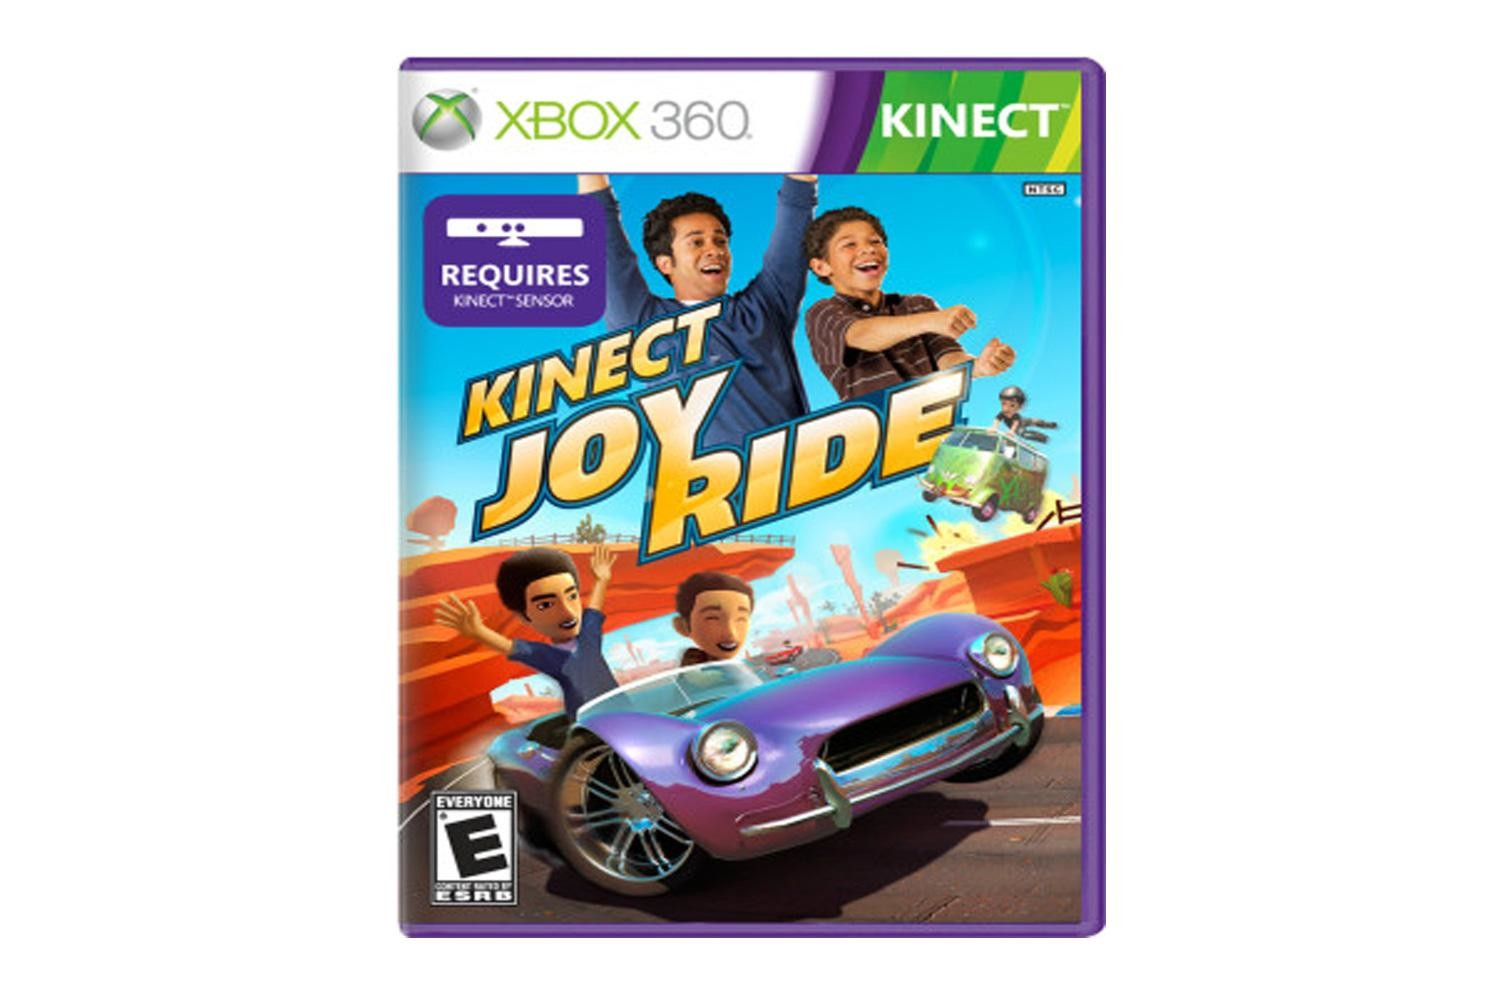 Kinect-Joy-Ride-cover-art